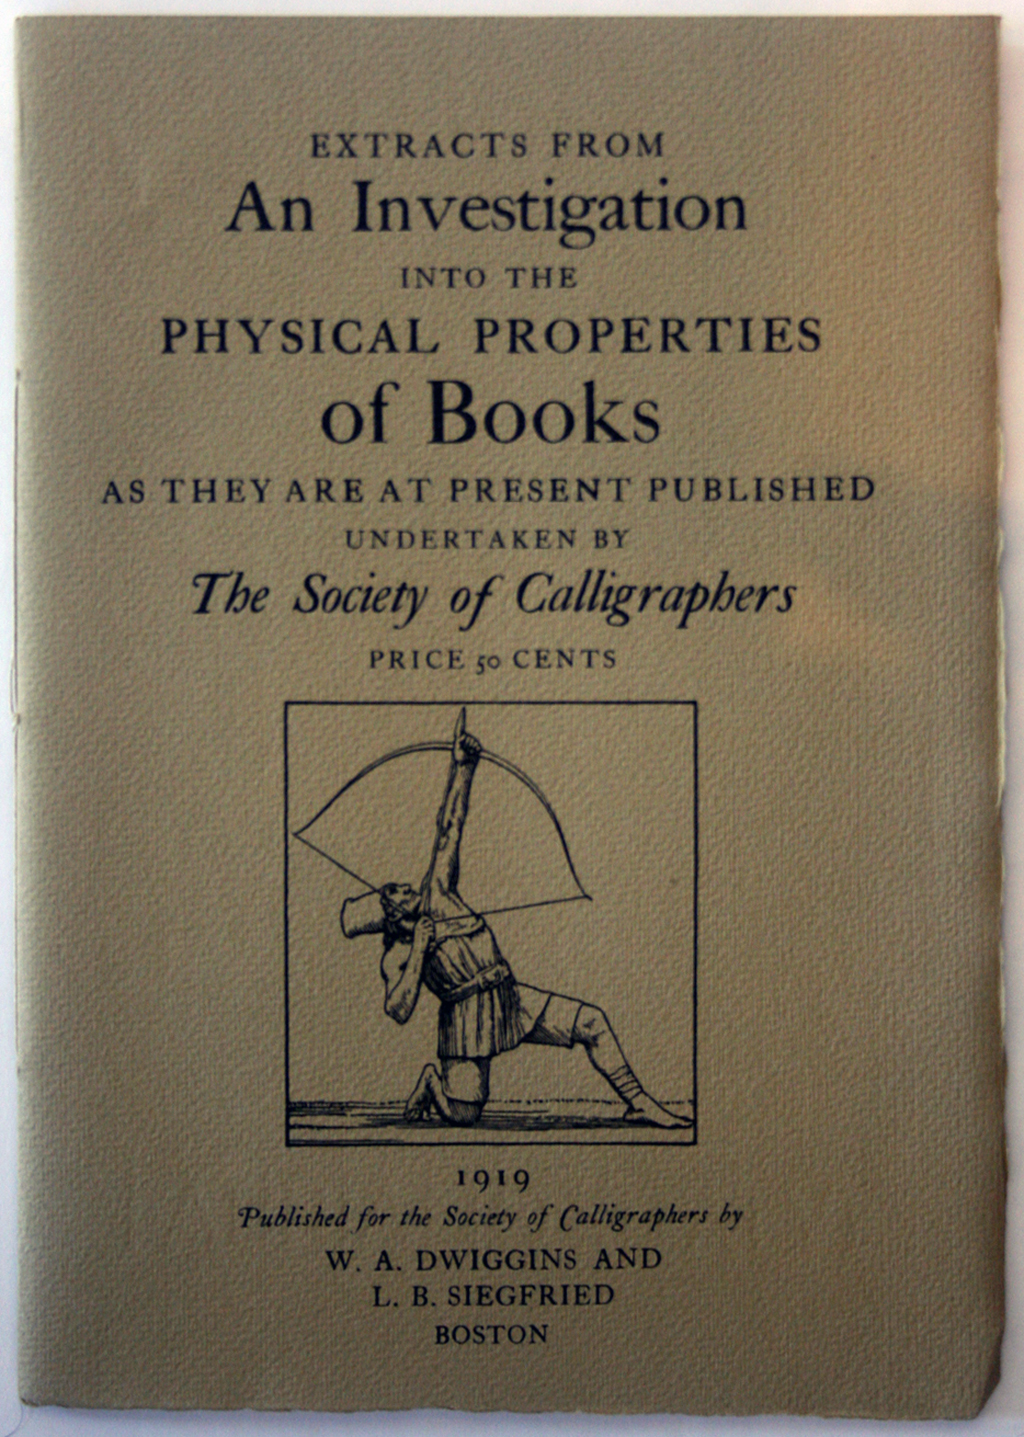 Cover of Extracts from An Investigation into the Physical Properties of Books as They Are at Present Published (Boston: W.A. Dwiggins and L.B. Siegfried for the Society of Calligraphers, 1919). Design by W.A. Dwiggins.